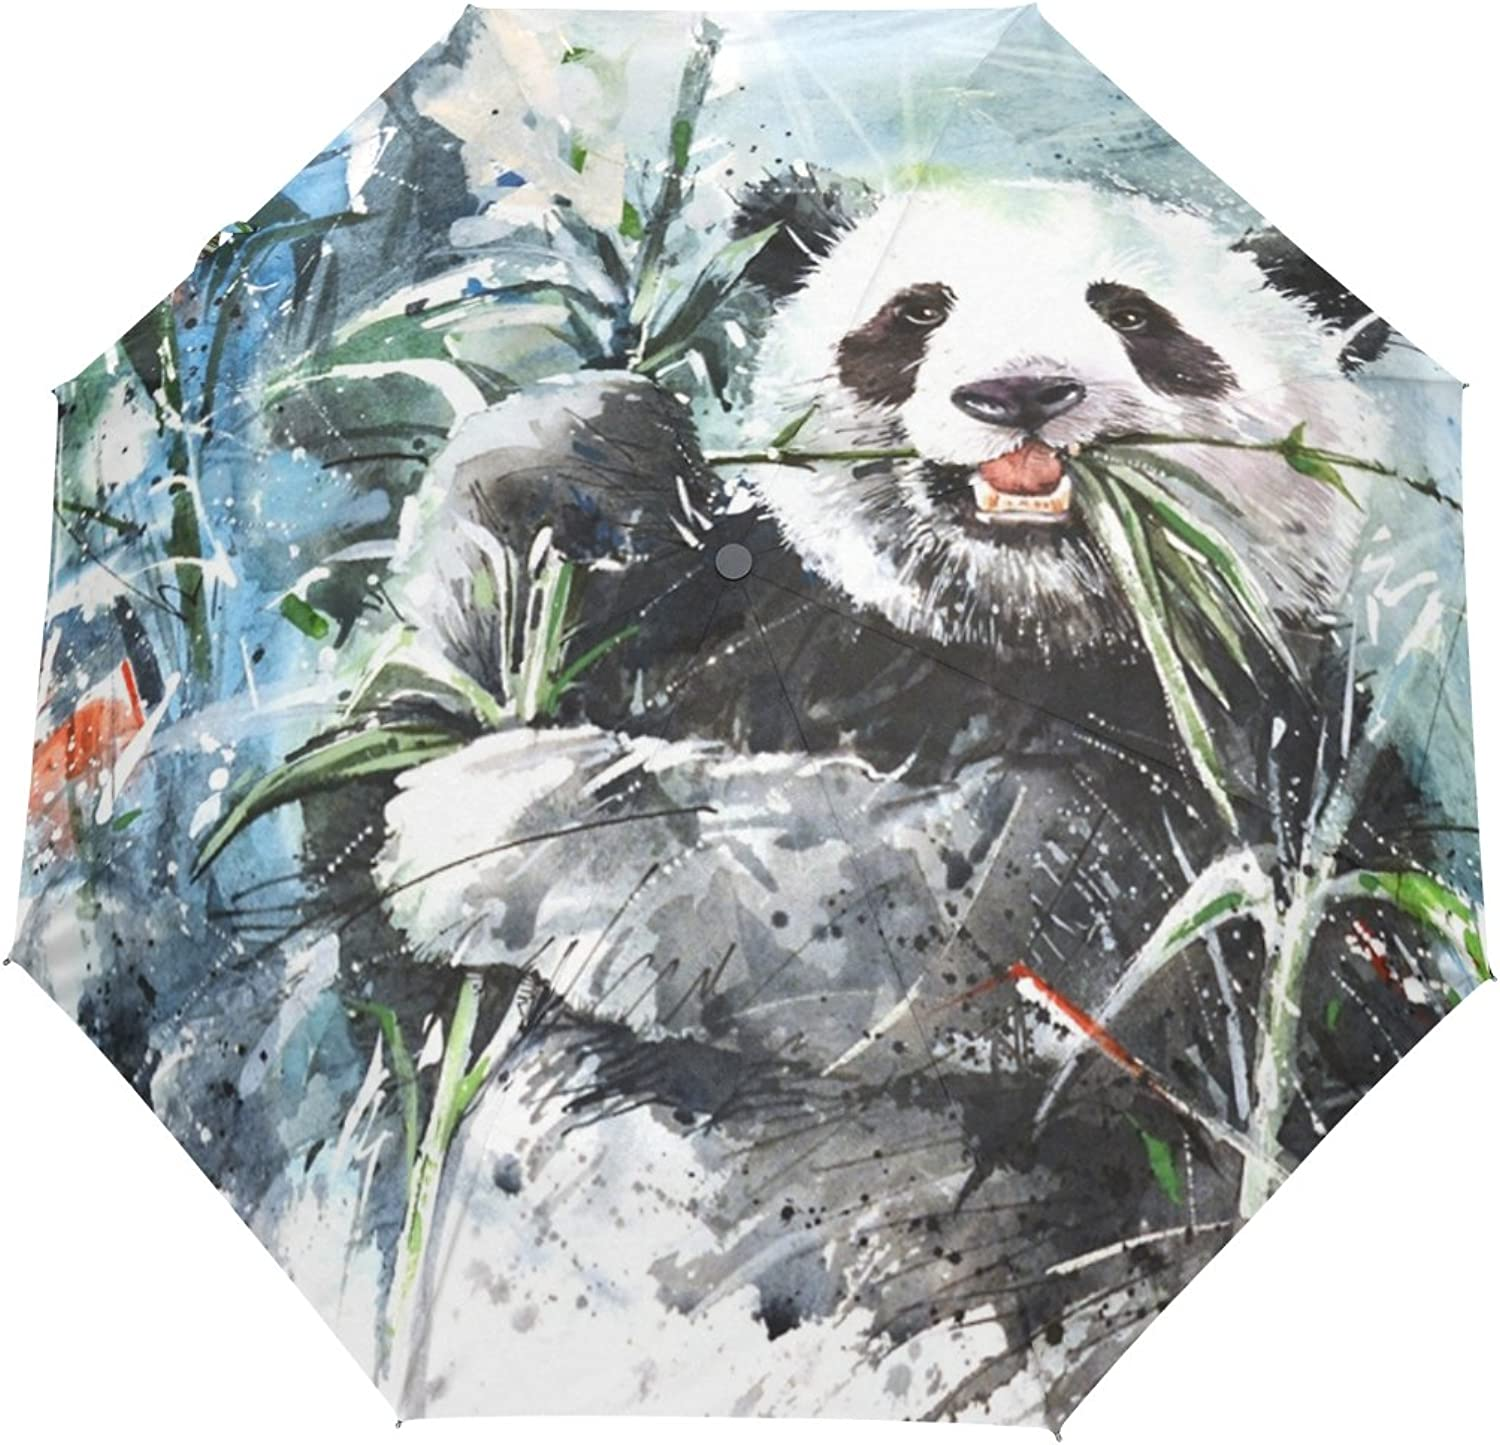 MASSIKOA Panda Bamboo Painting Umbrella Double Sided Canopy AutoOpen Close Foldable Travel Rain Umbrellas